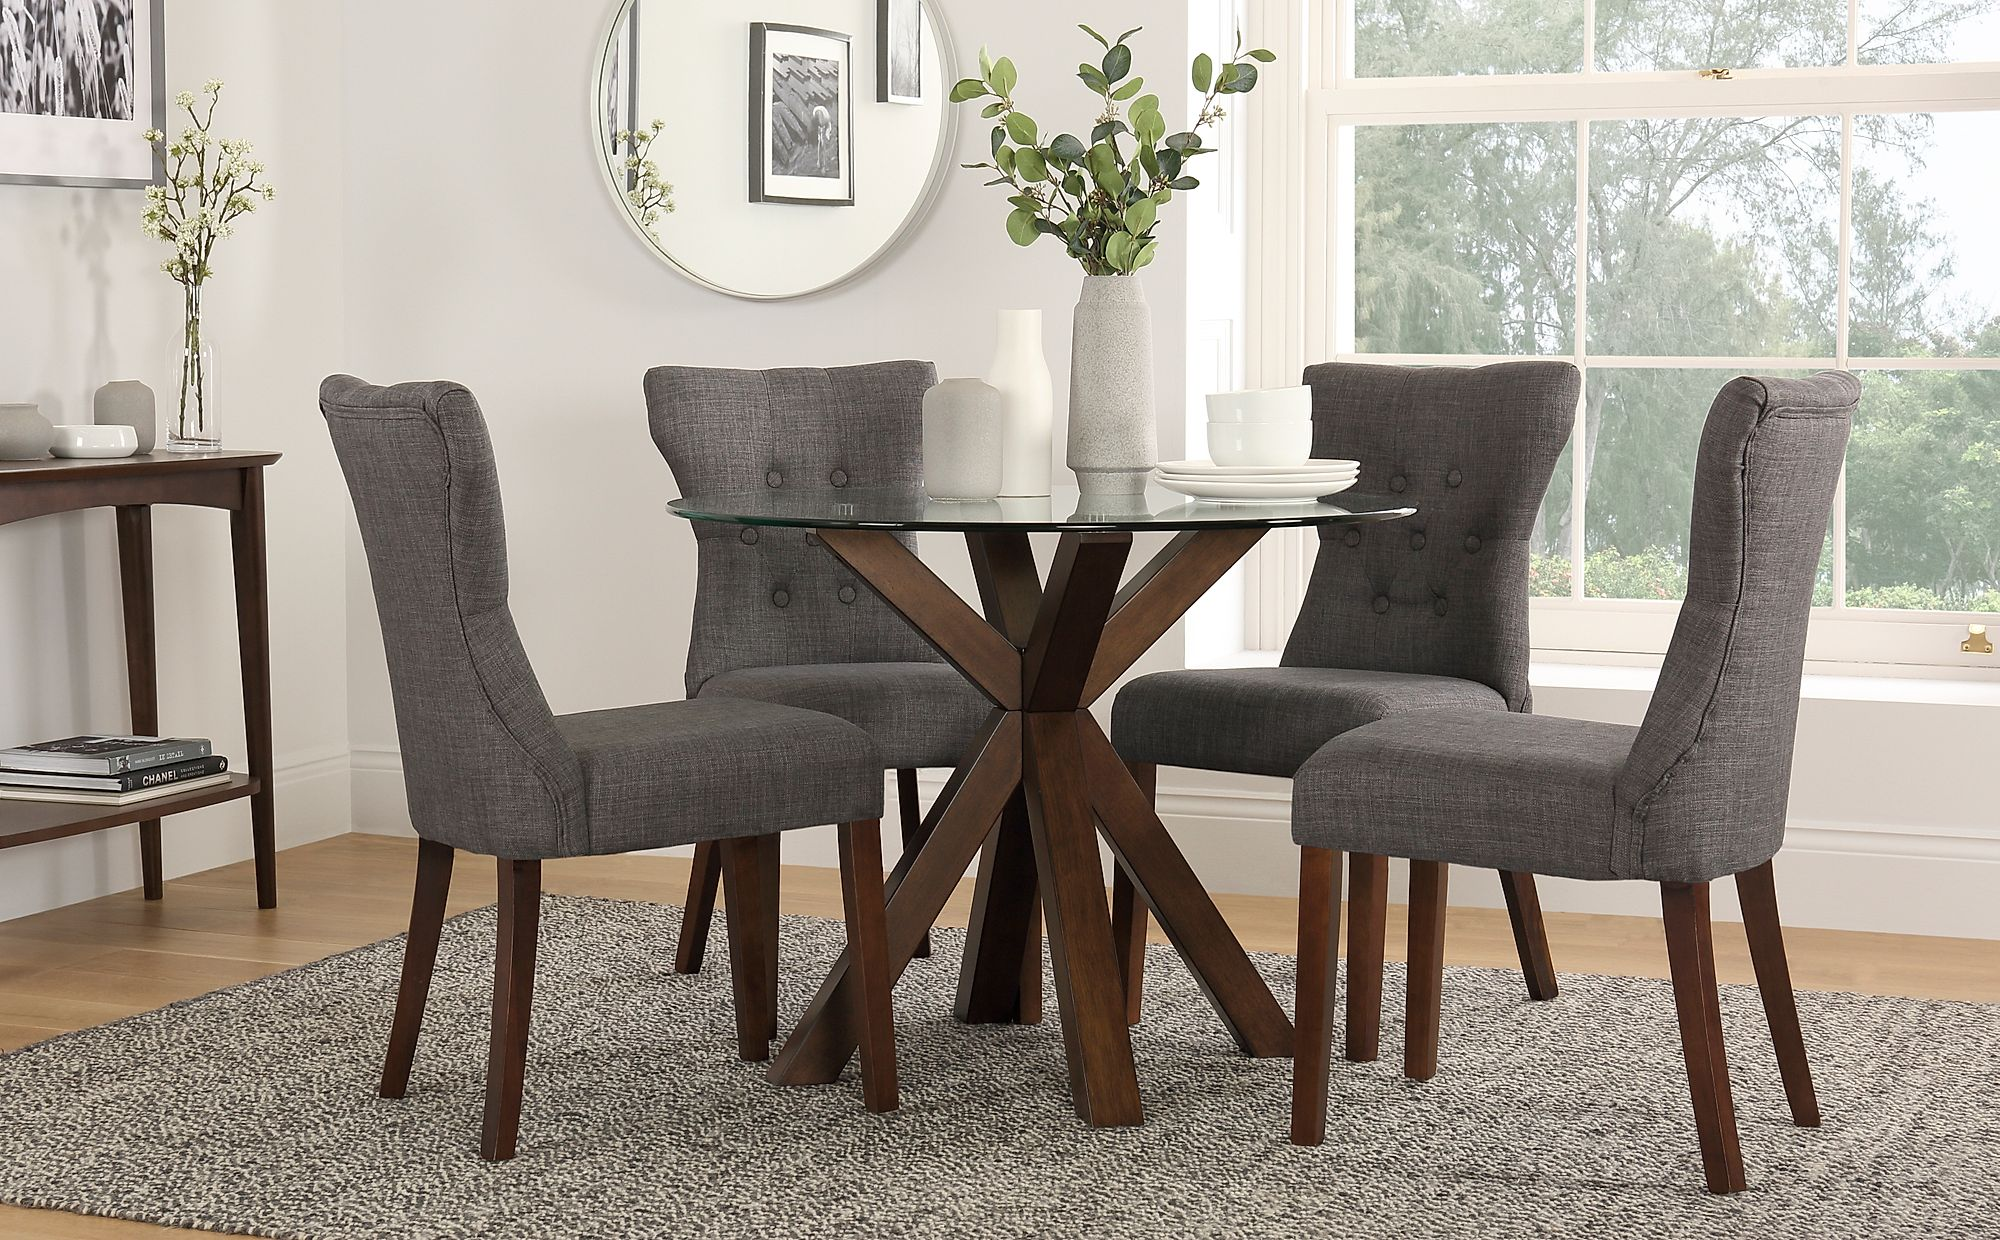 4 Optimal Choices In Glass Dining Table And Chairs: Hatton Round Walnut And Glass Dining Table With 4 Bewley